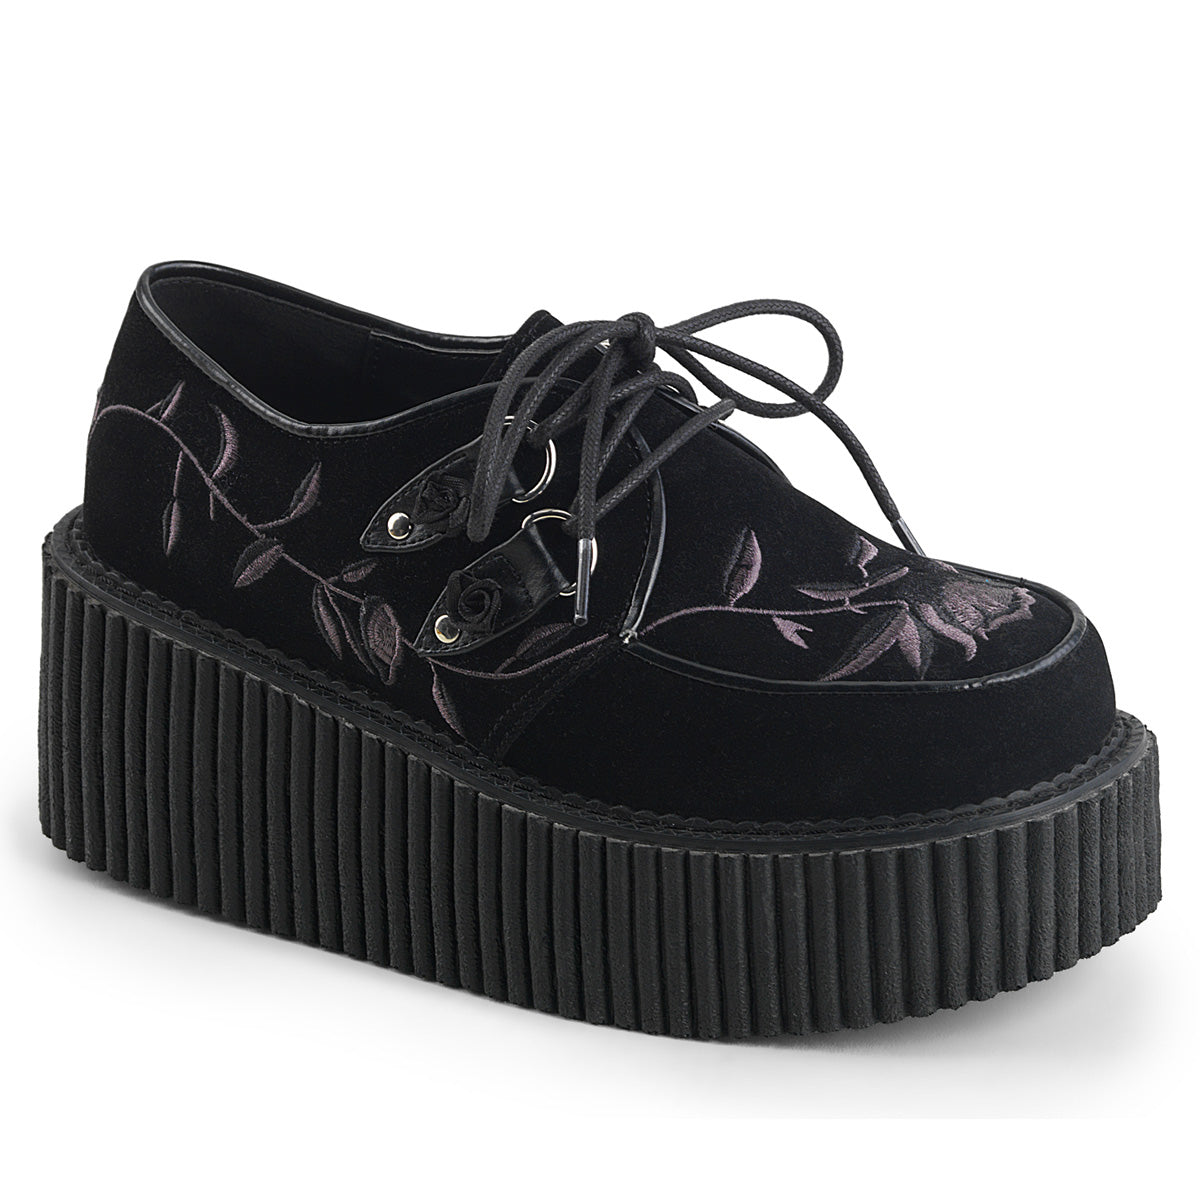 "3"" PF Creeper W/ Embroidered Flower"